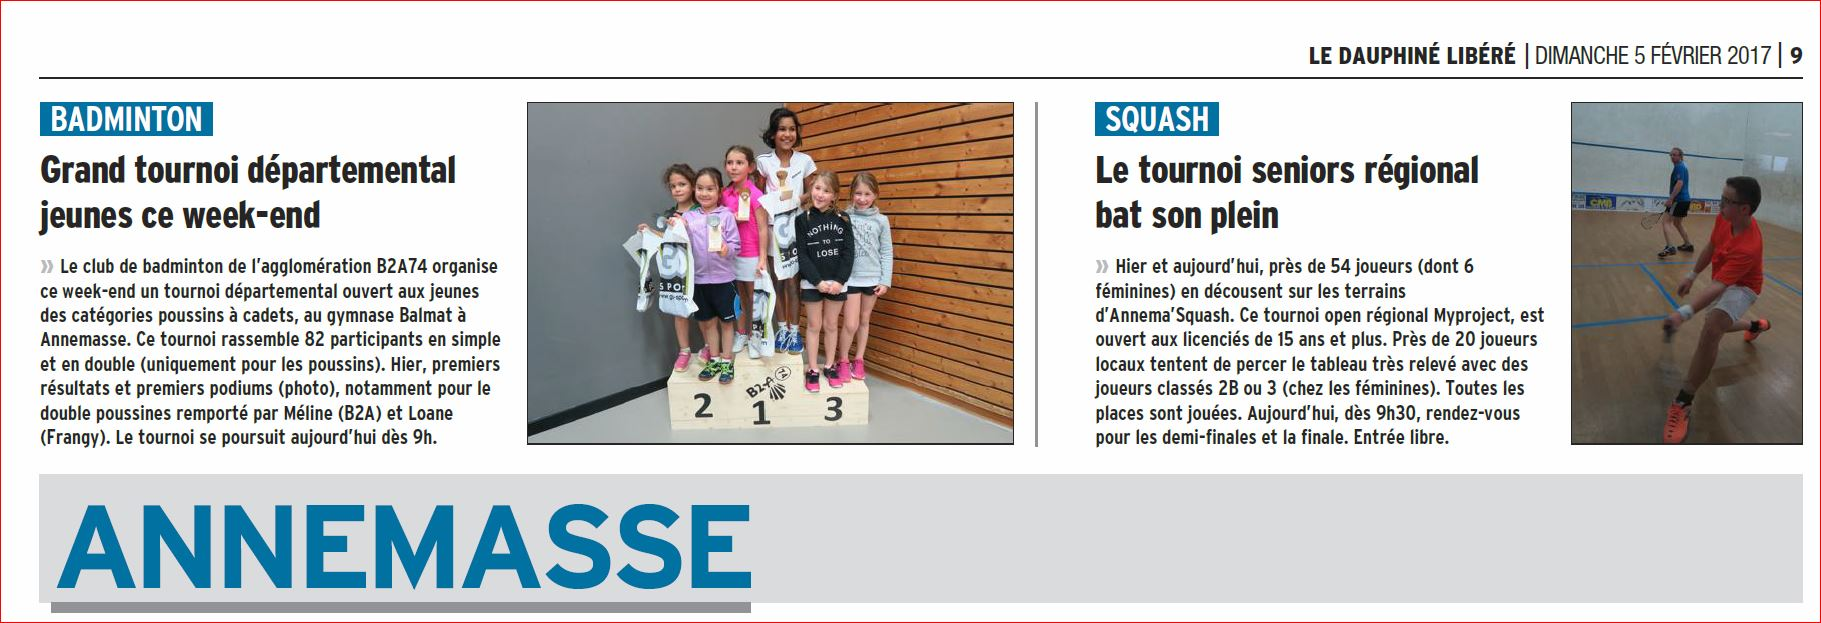 article-2-dauphine